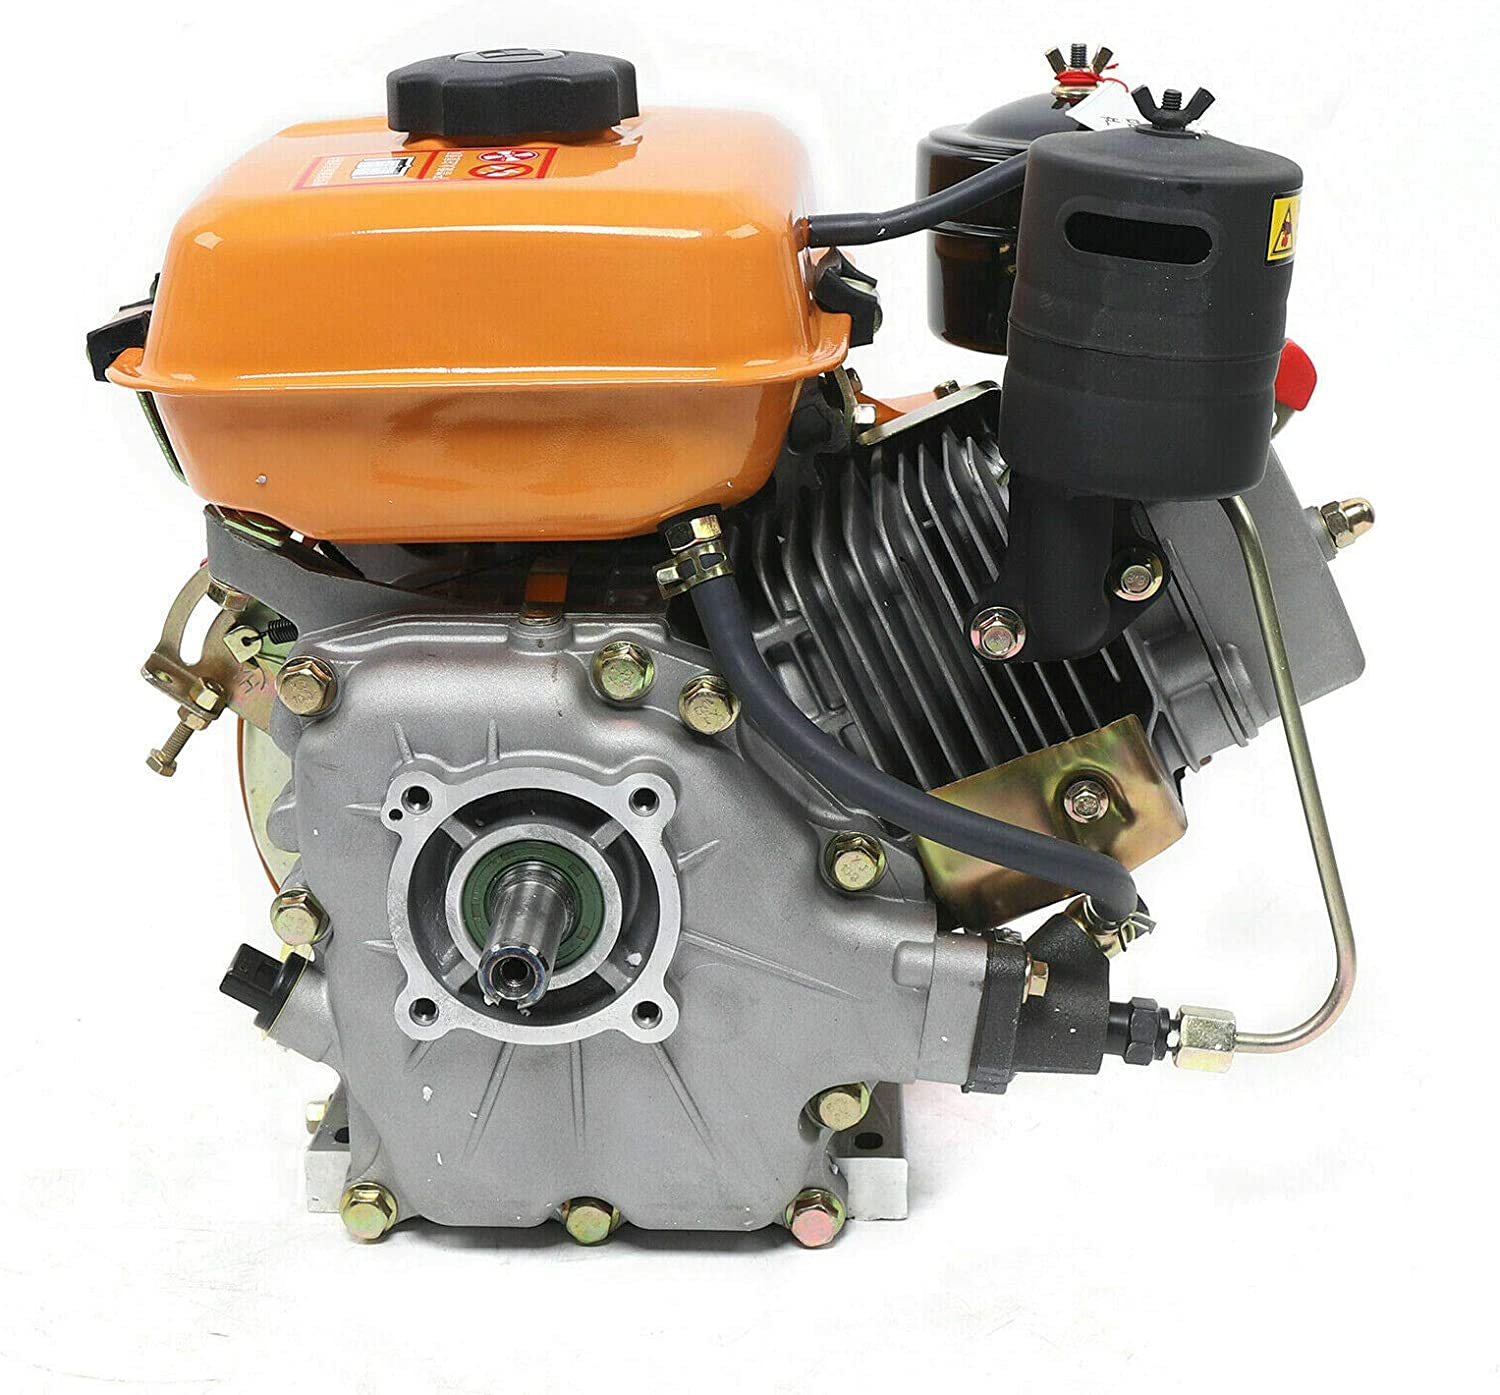 2021 model 168F 2.2Kw Air-Cooled Single-Cylinder Air-C Max 80% OFF Engine 196CC Diesel